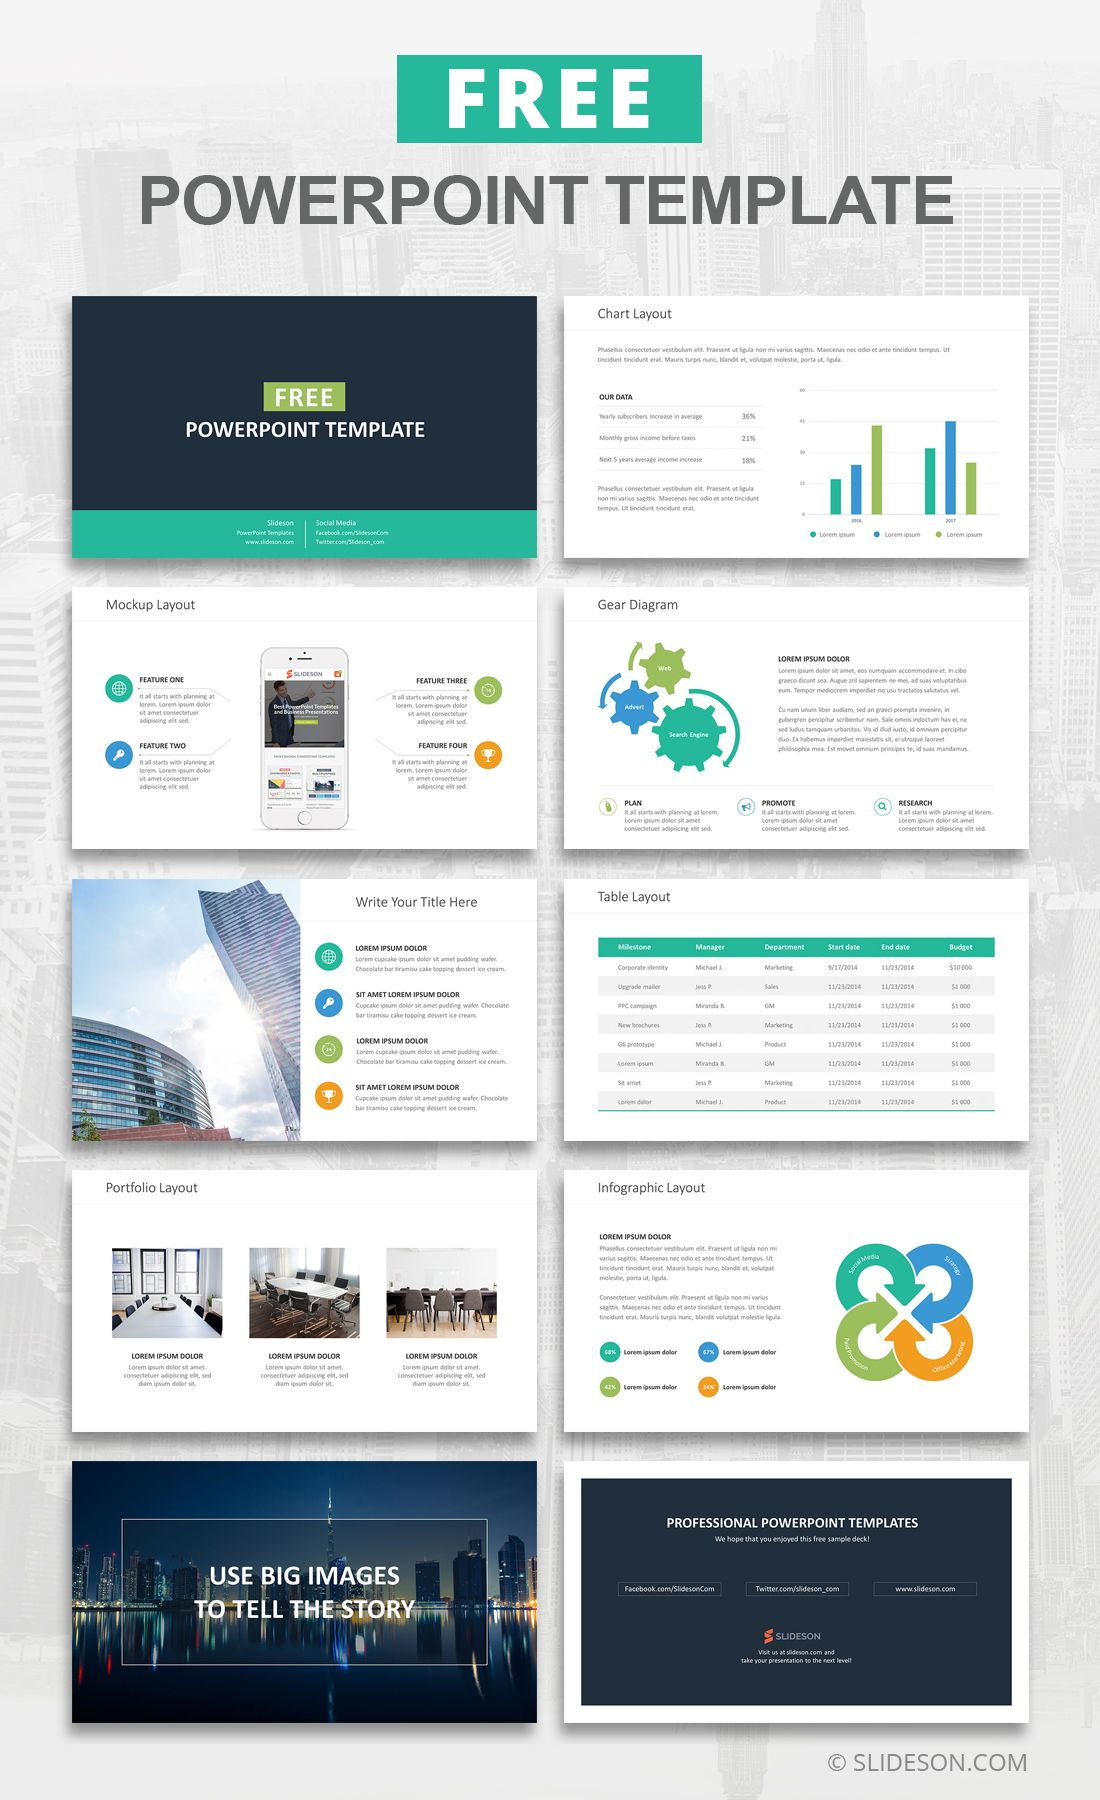 Free PowerPoint Templates and Slides Free powerpoint